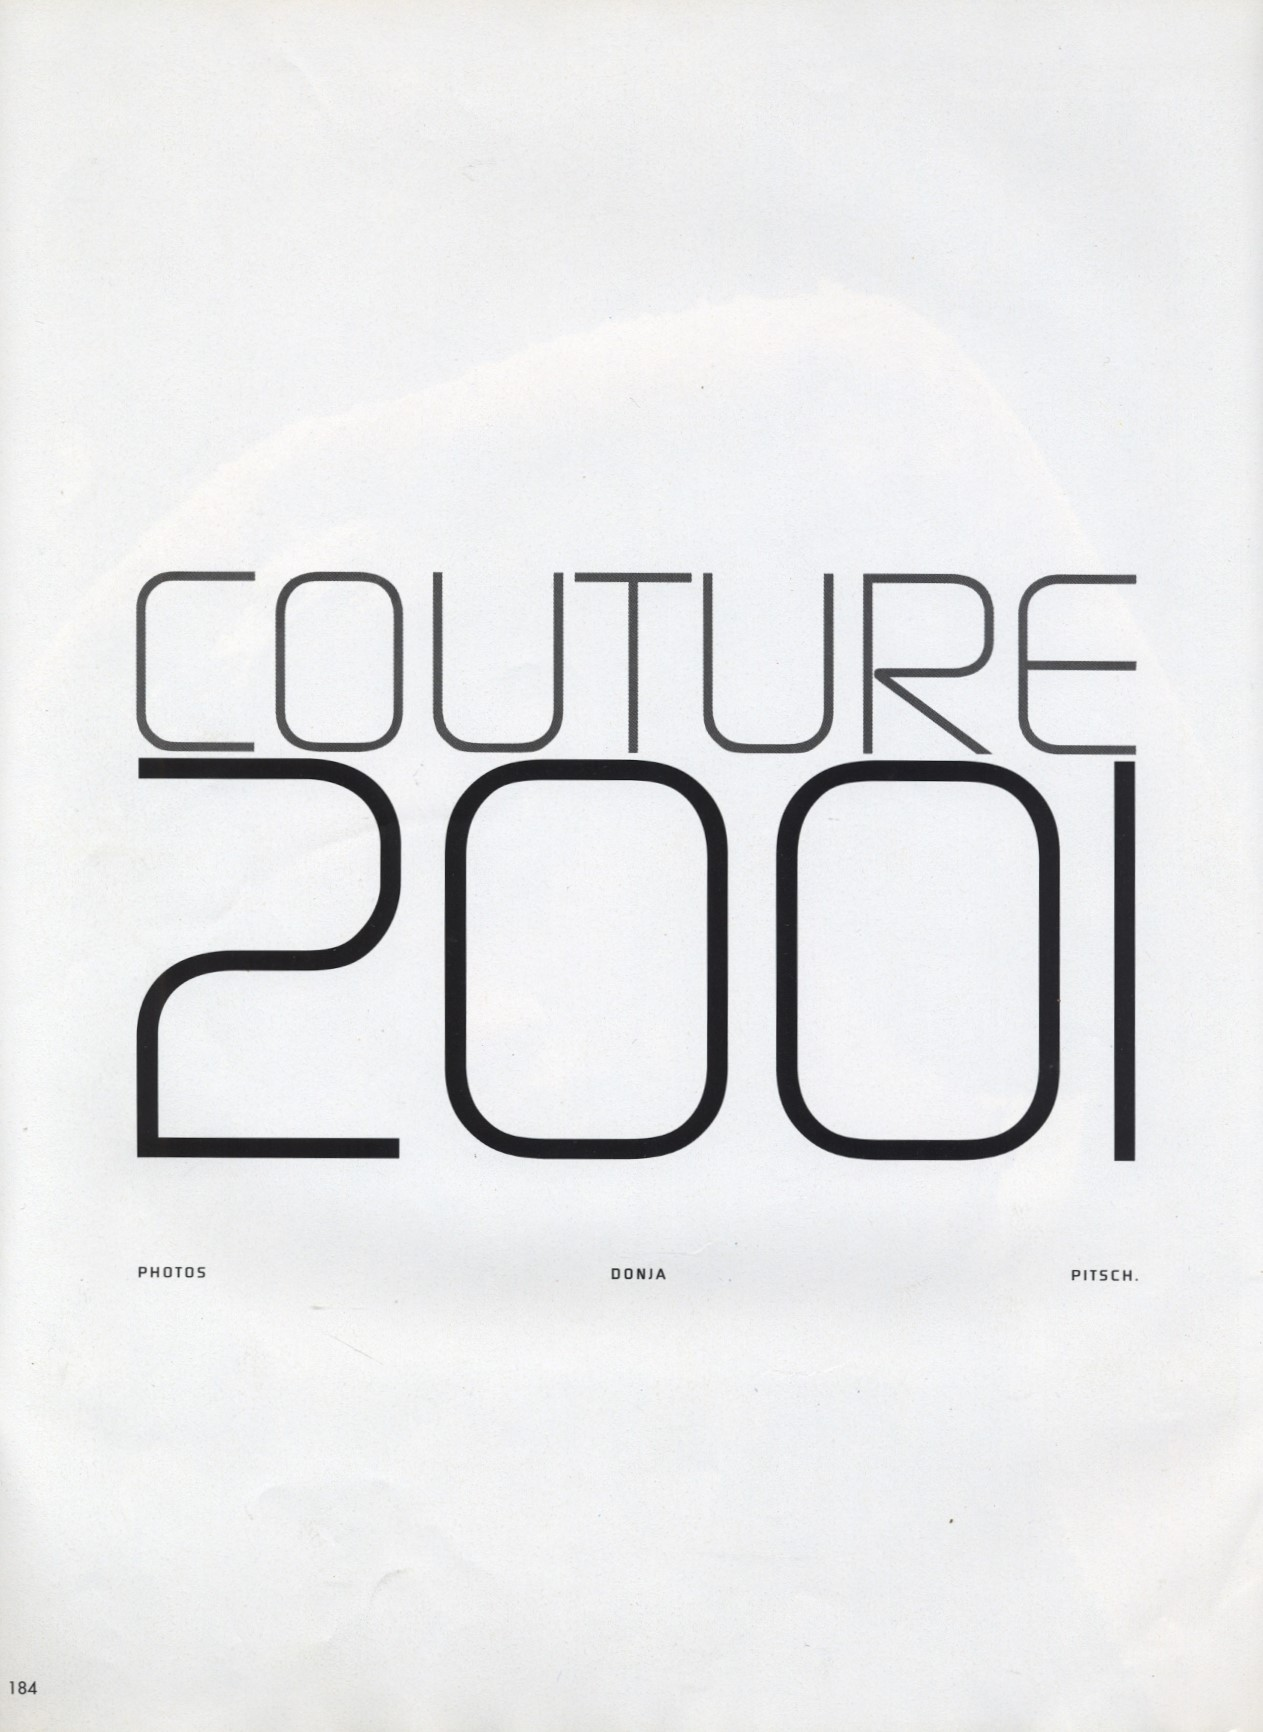 COUTURE 2001 | PHOTOGRAPHY DONJA PITSCH